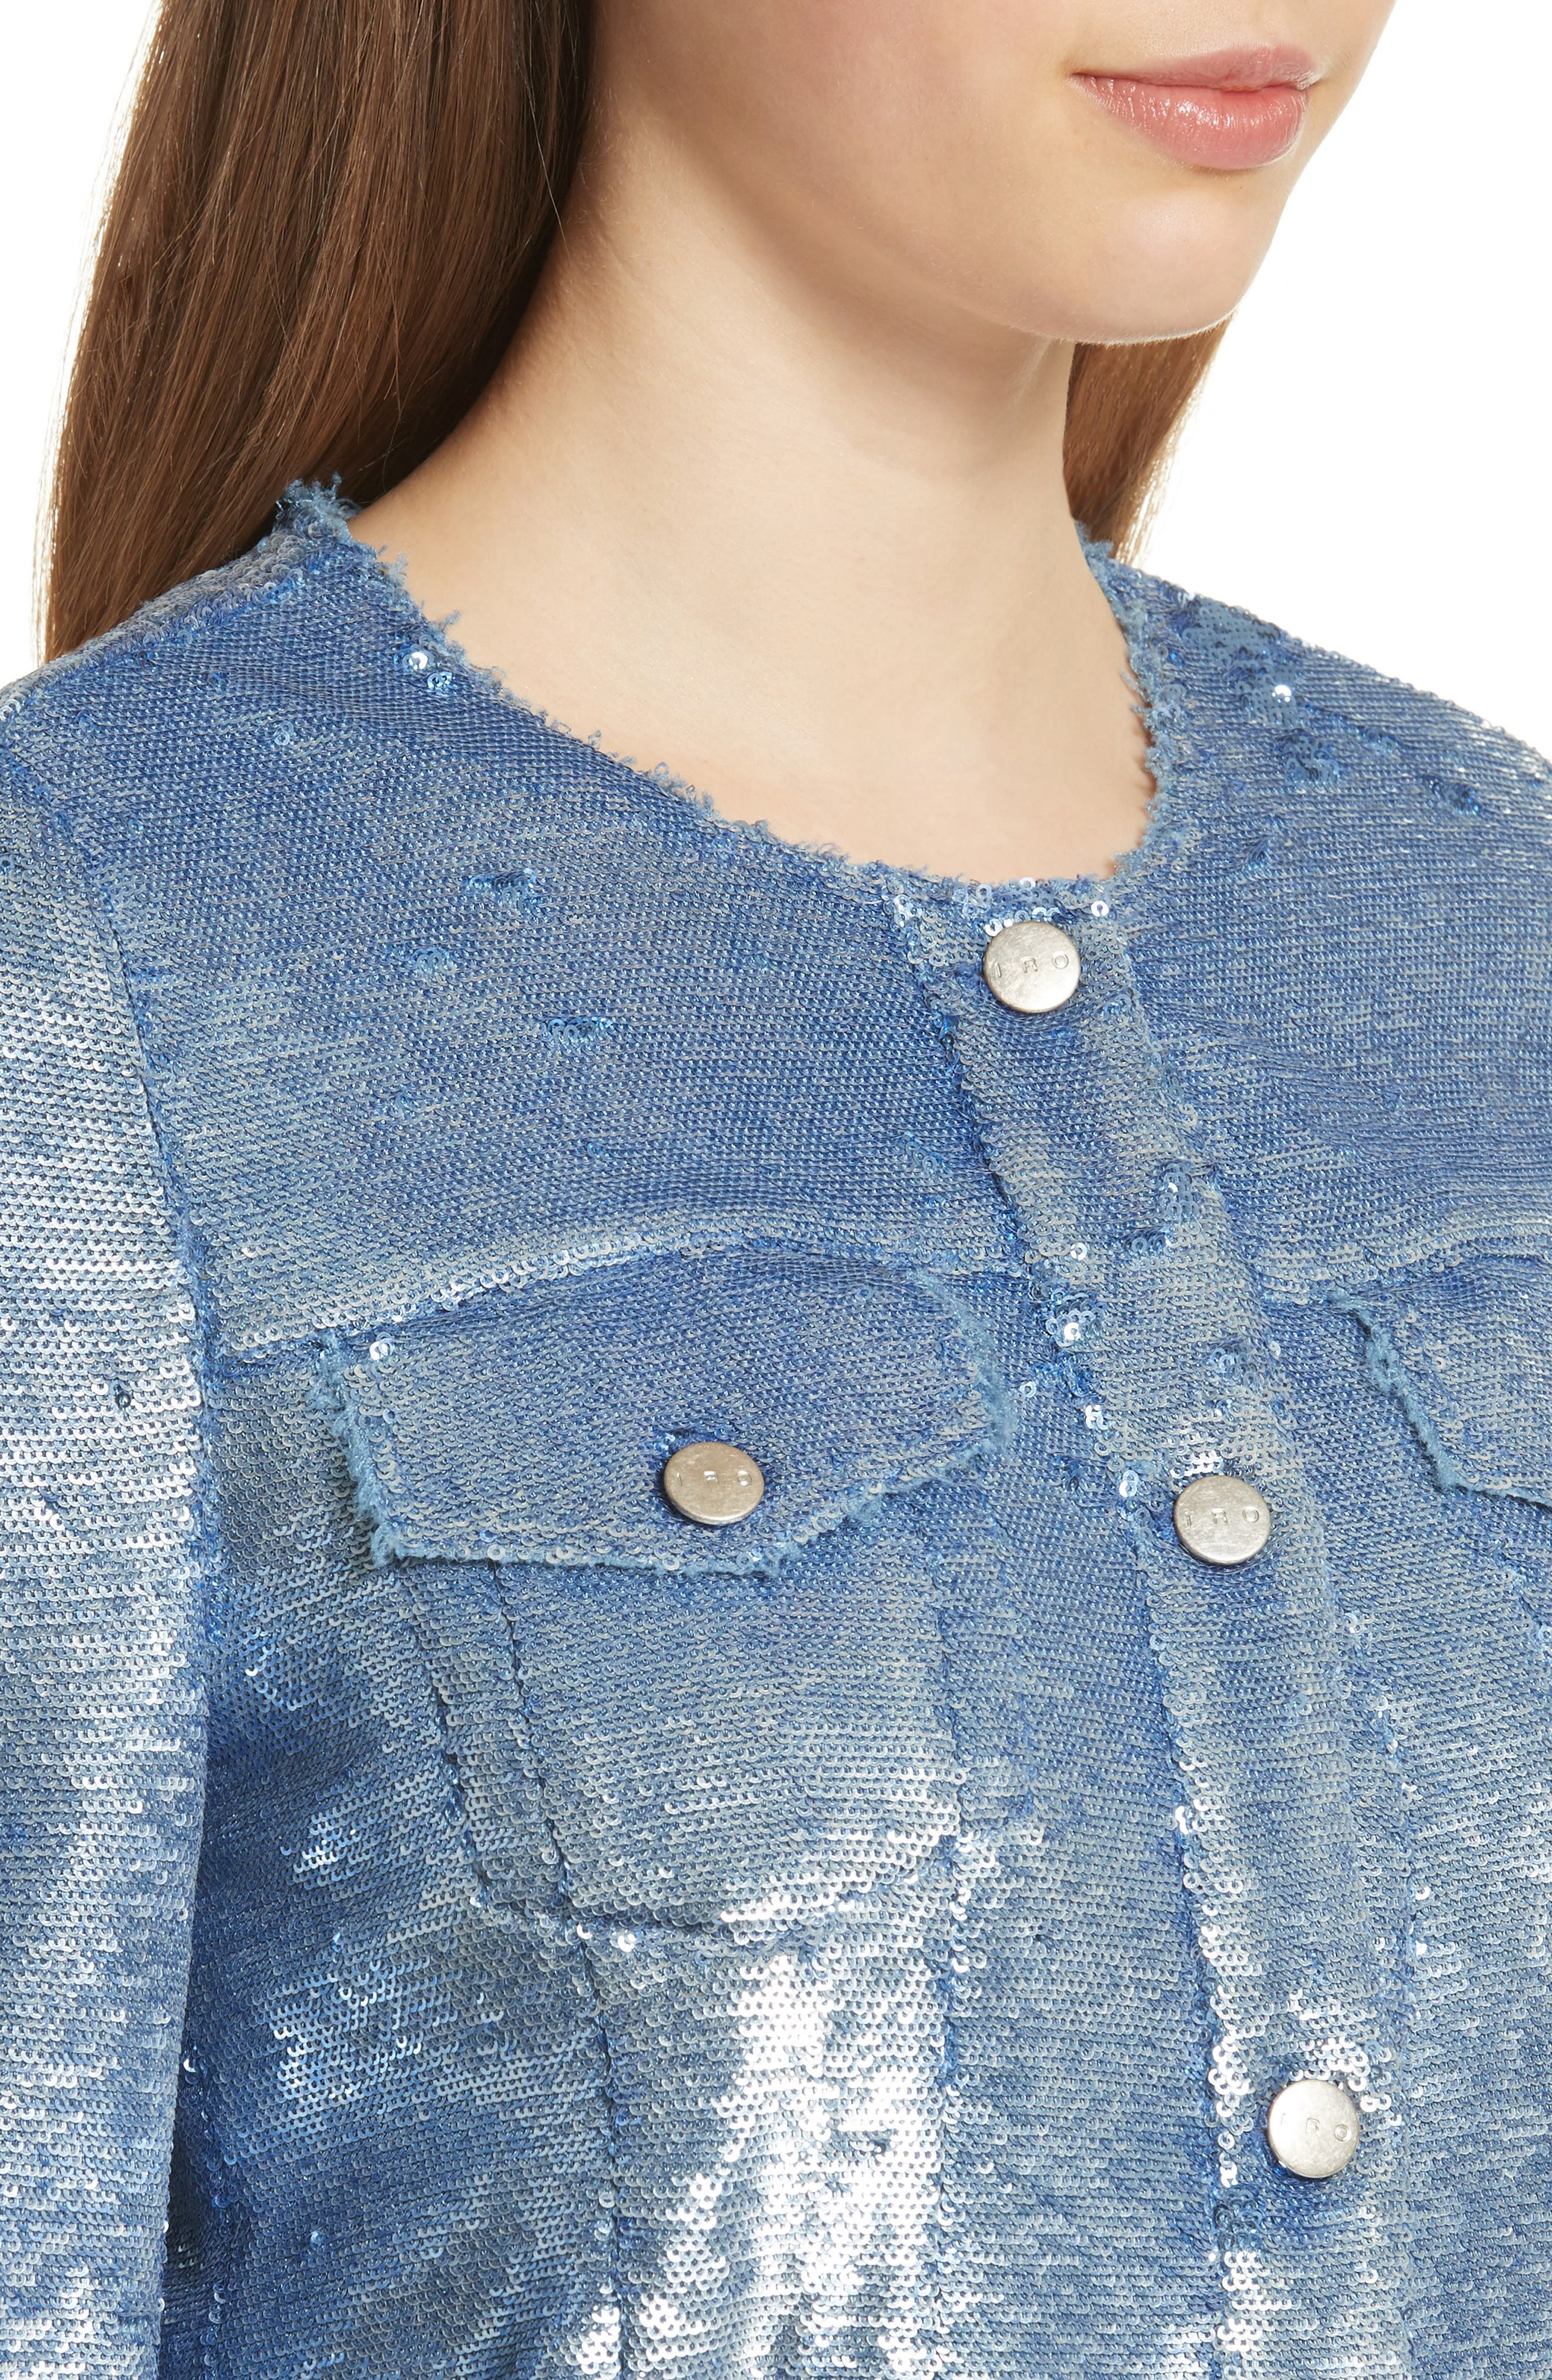 Dalome Sequin Jacket,                             Alternate thumbnail 4, color,                             Blushed Blue